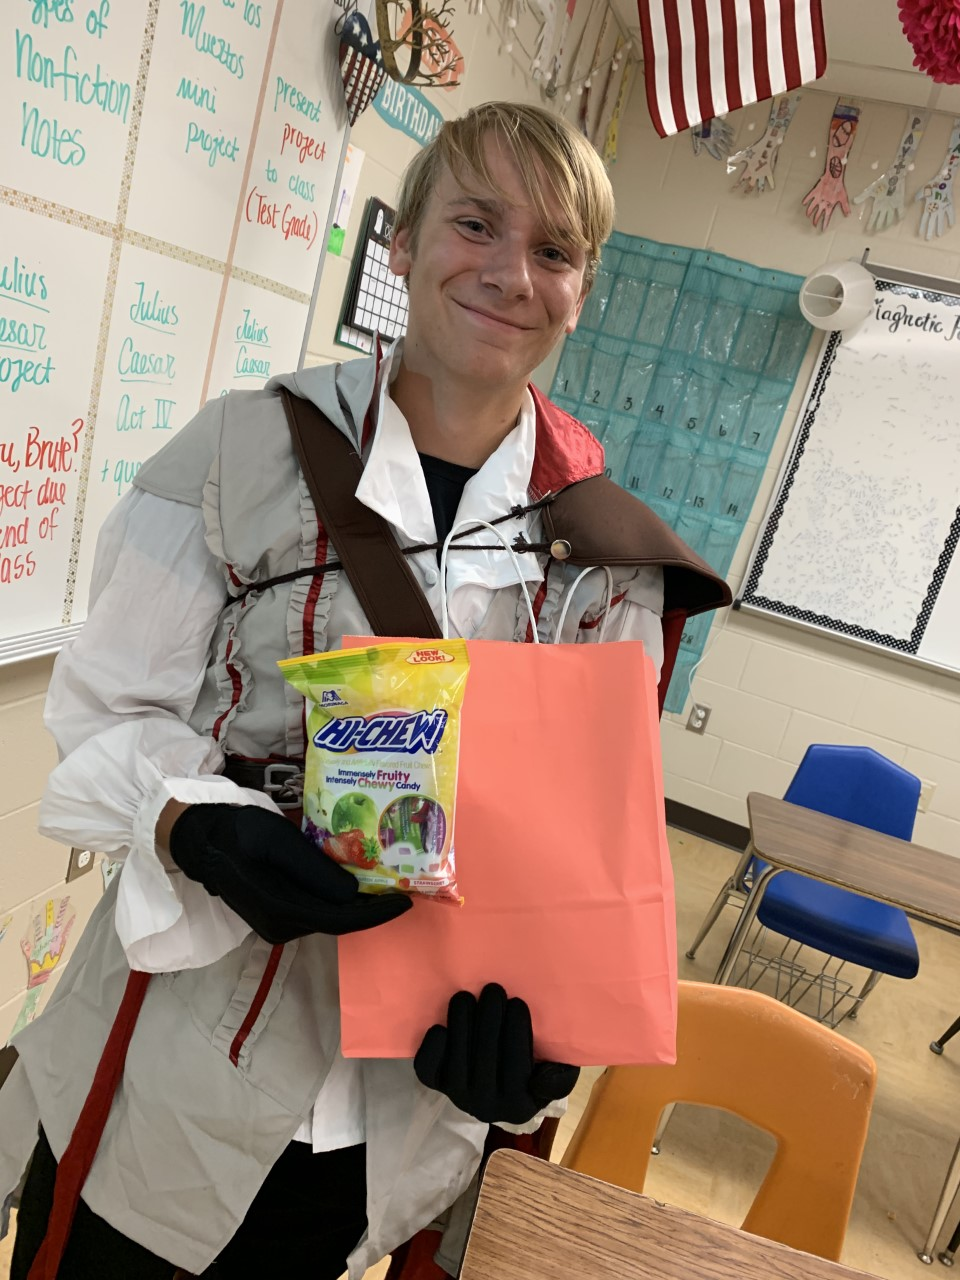 Junior Jace Peveto shows off his prize for the best costume.